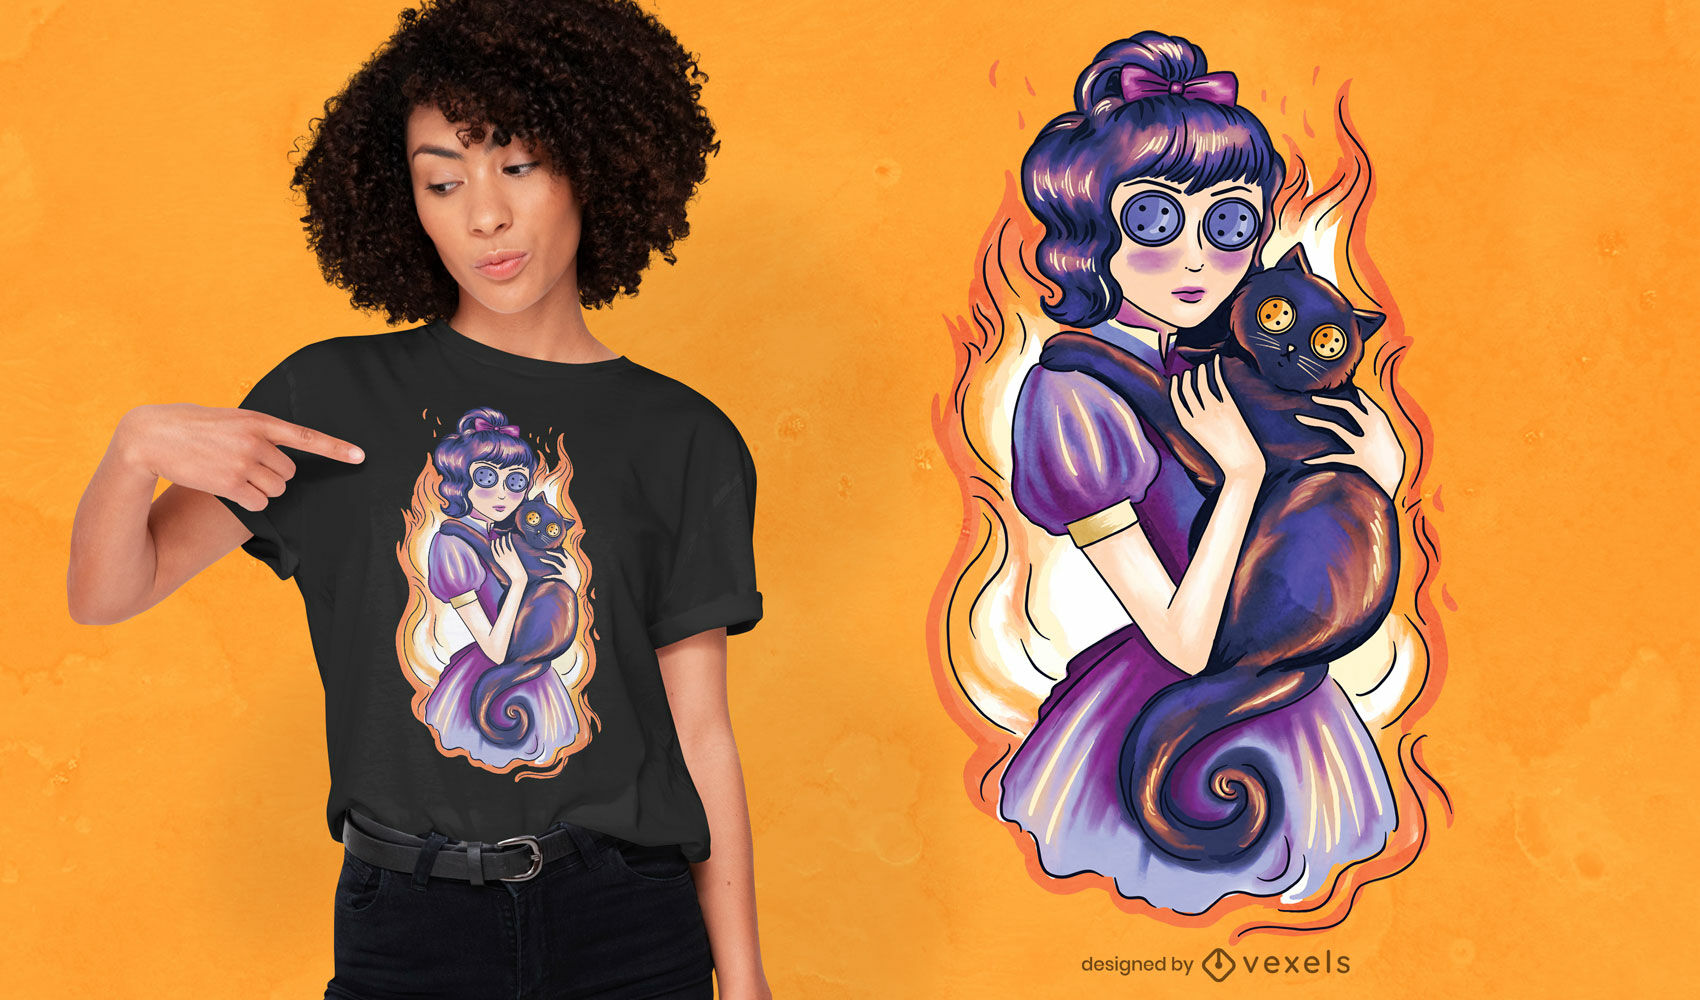 Creepy girl and cat on fire t-shirt design